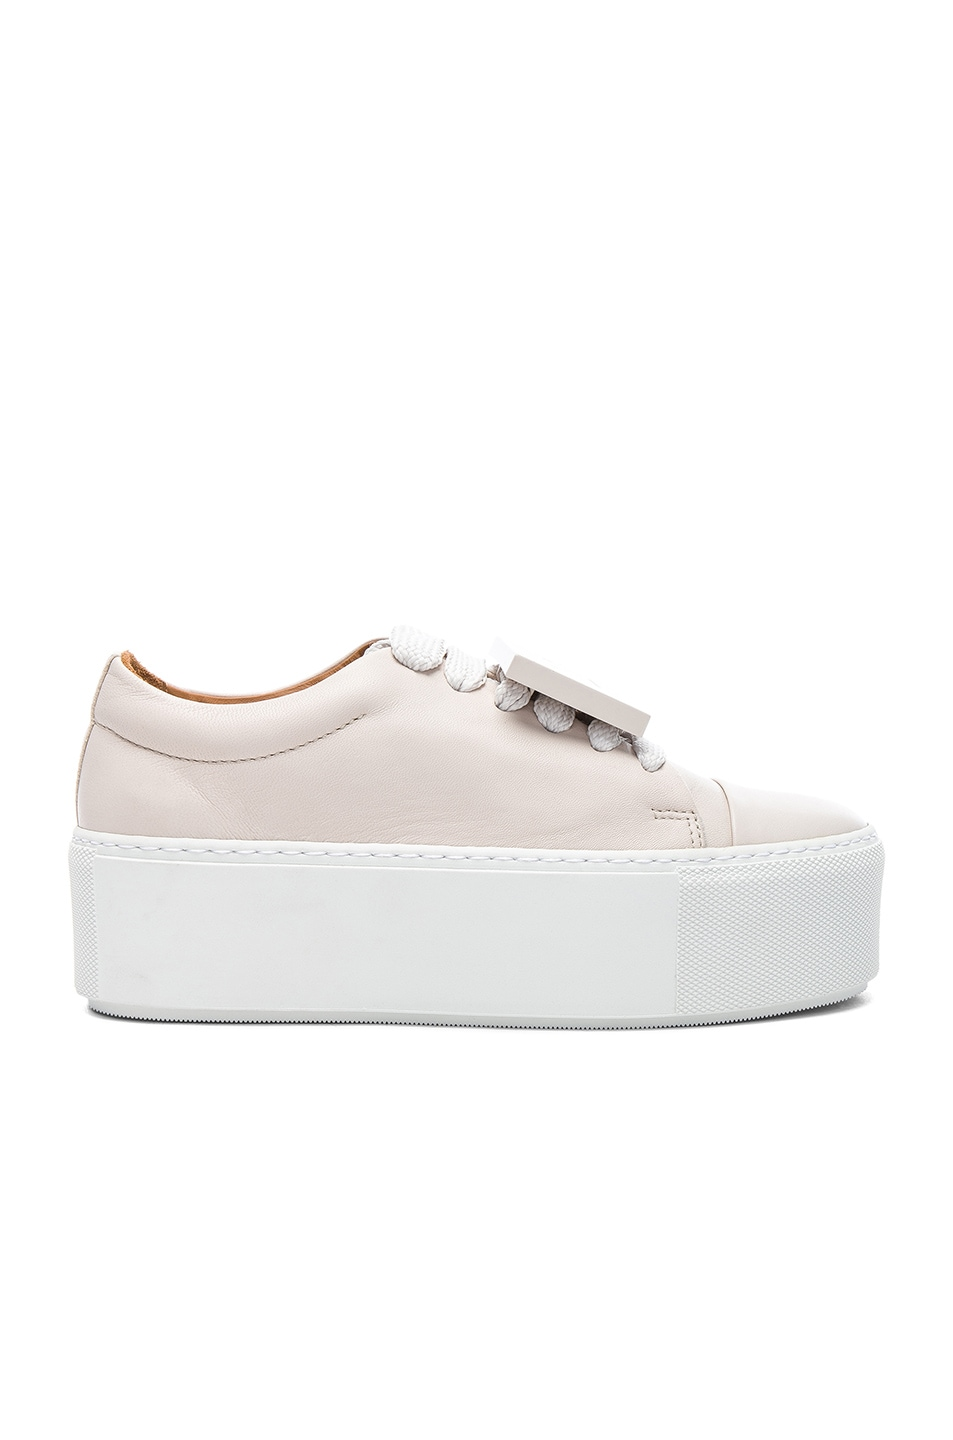 Acne Nappa Leather Drihanna Sneakers in Off & Amber Quality From China Wholesale Good Selling JWFDt